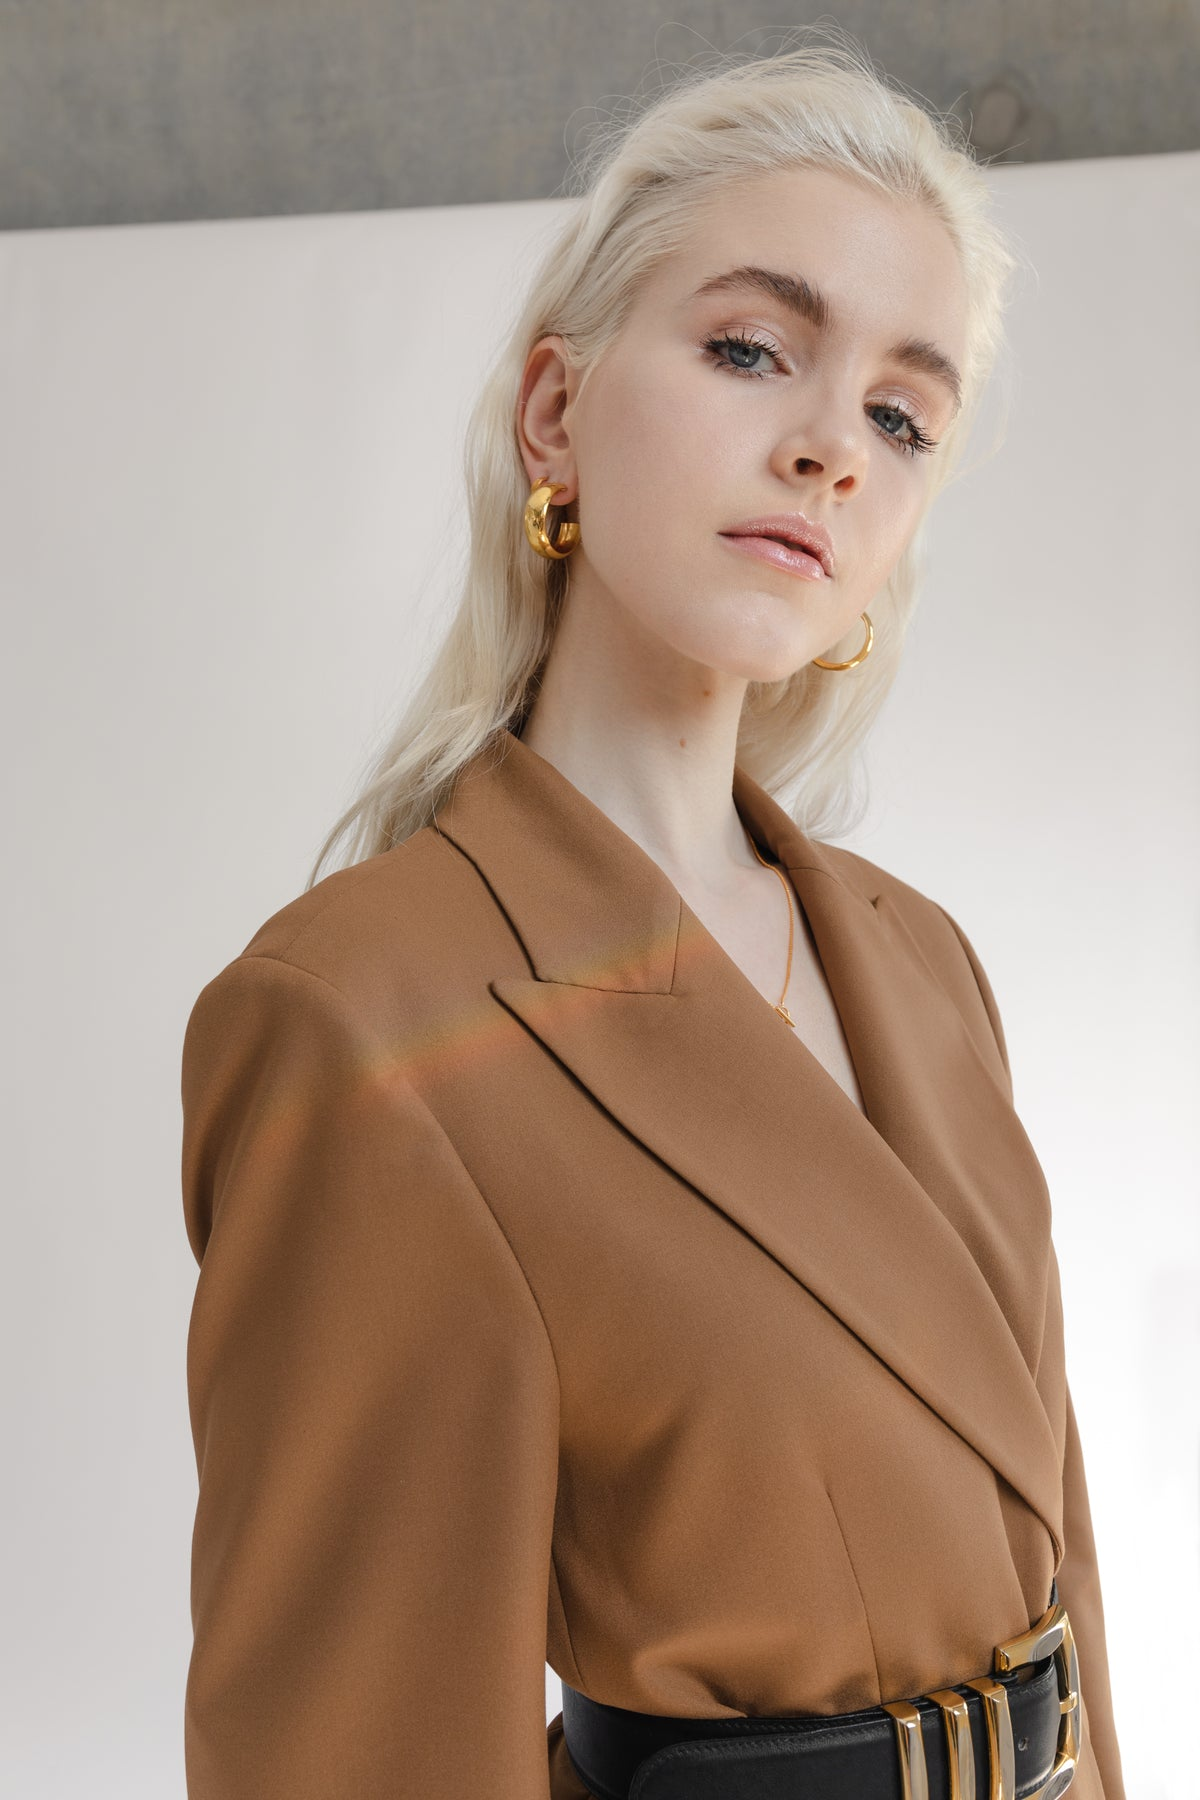 beautiful blonde model wearing Flash jewellery Hollow Hoops in 18ct gold available on Maker's Mrkt Makers Market melbourne